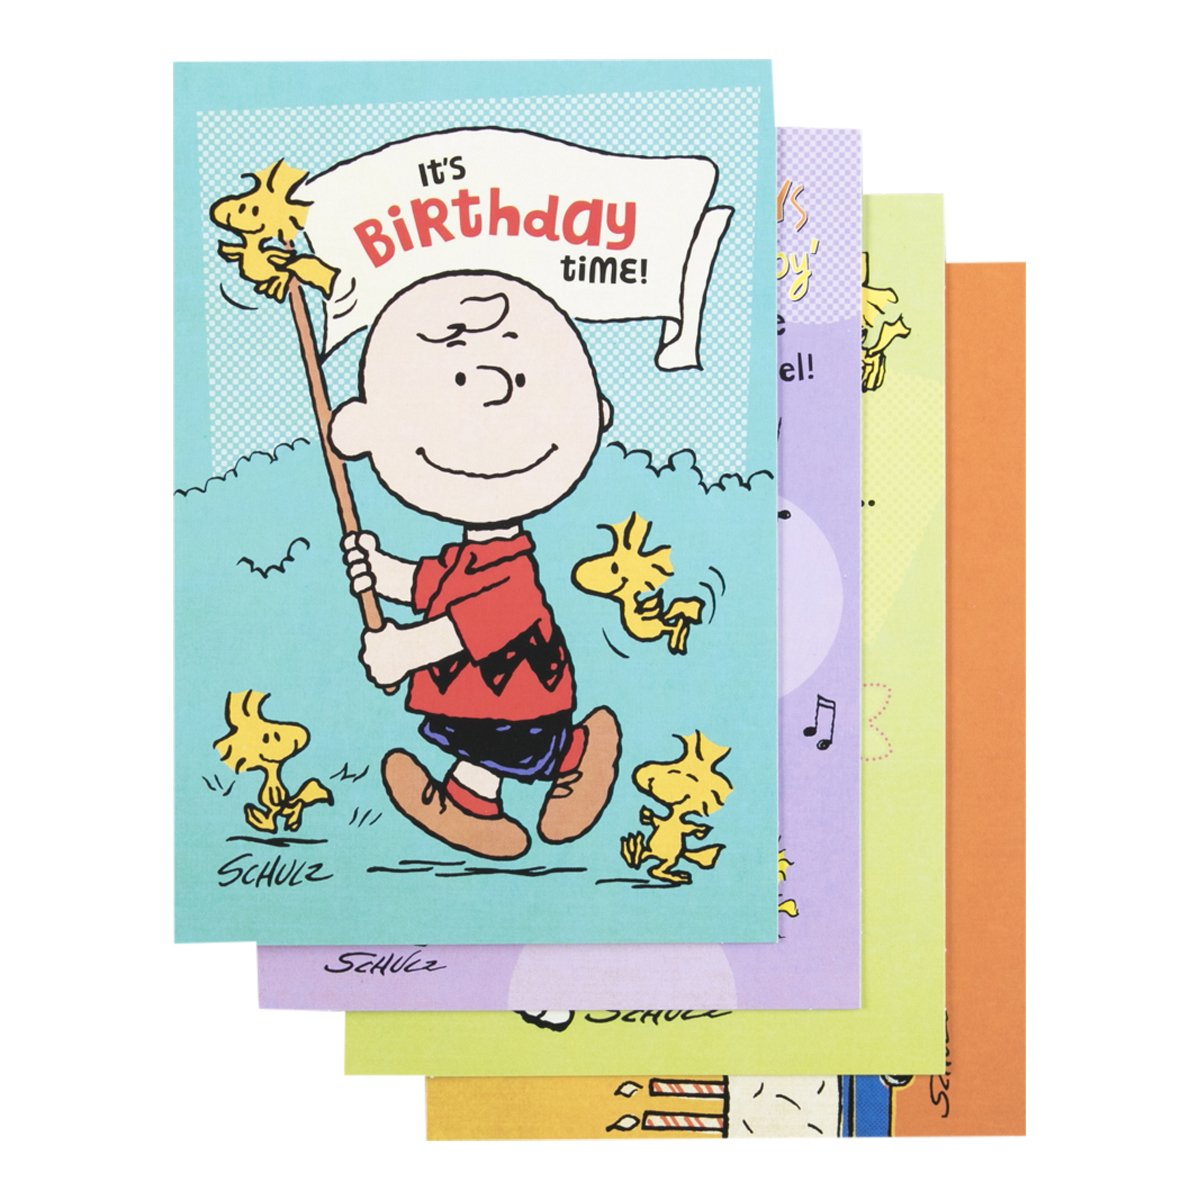 Peanuts - Birthday Inspirational Boxed Cards DaySpring Company 86067